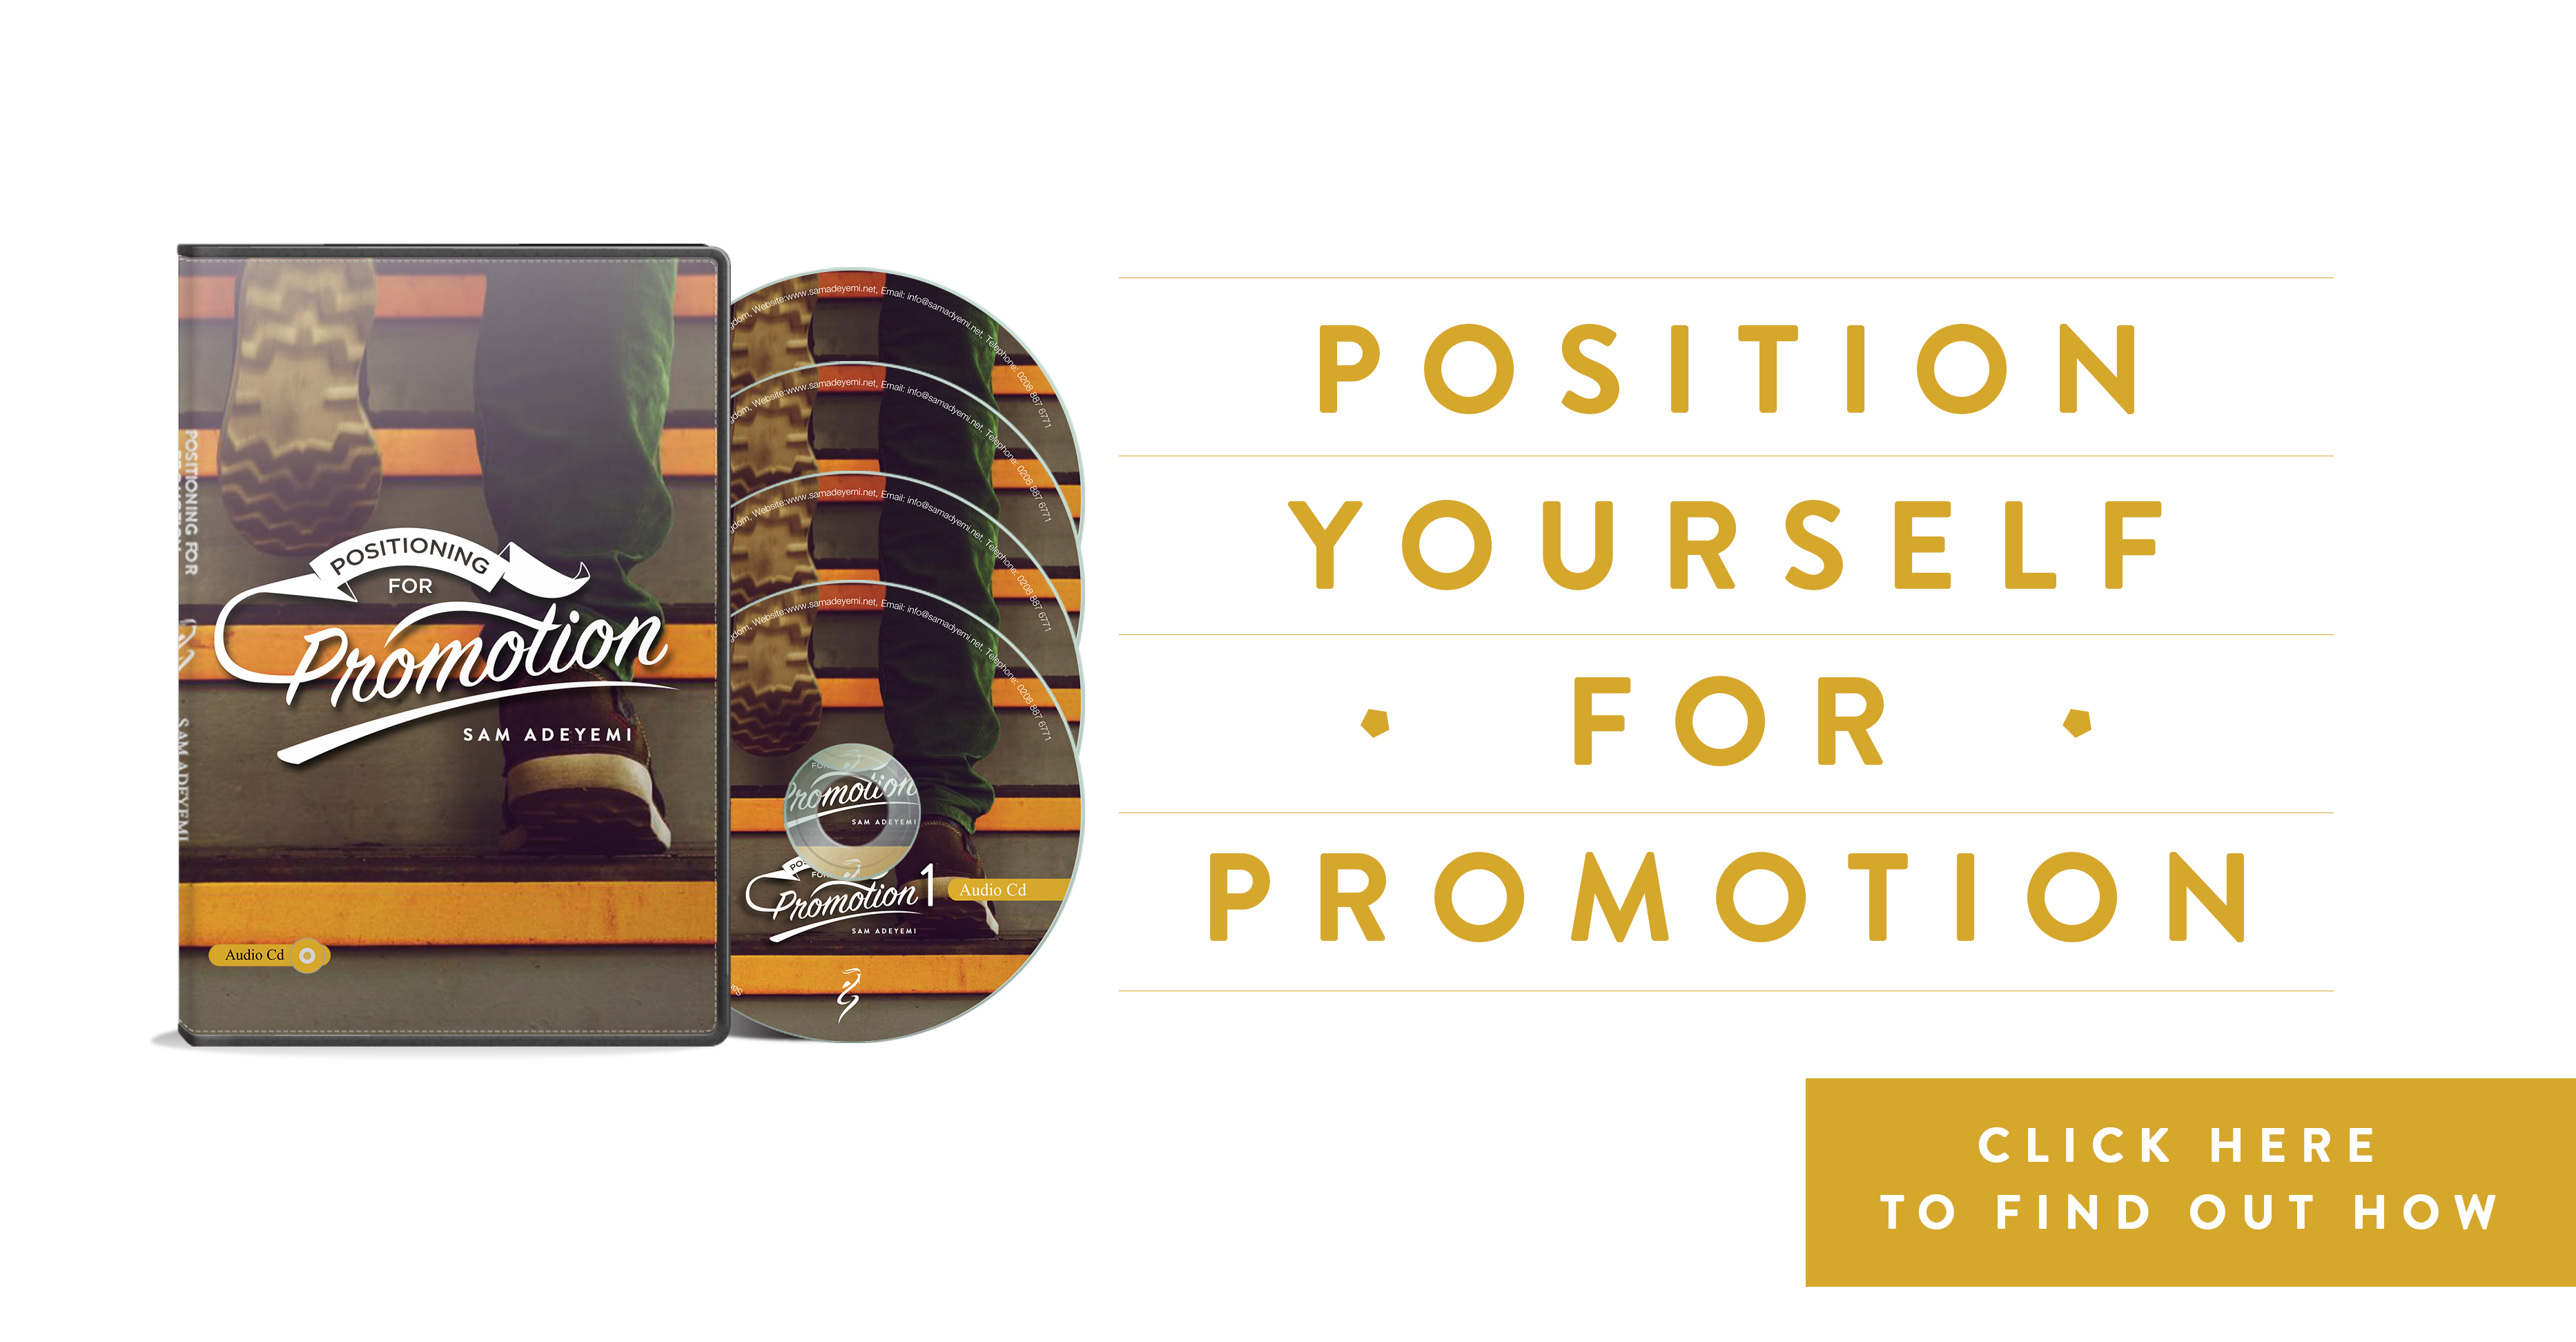 Positioning For Promotion